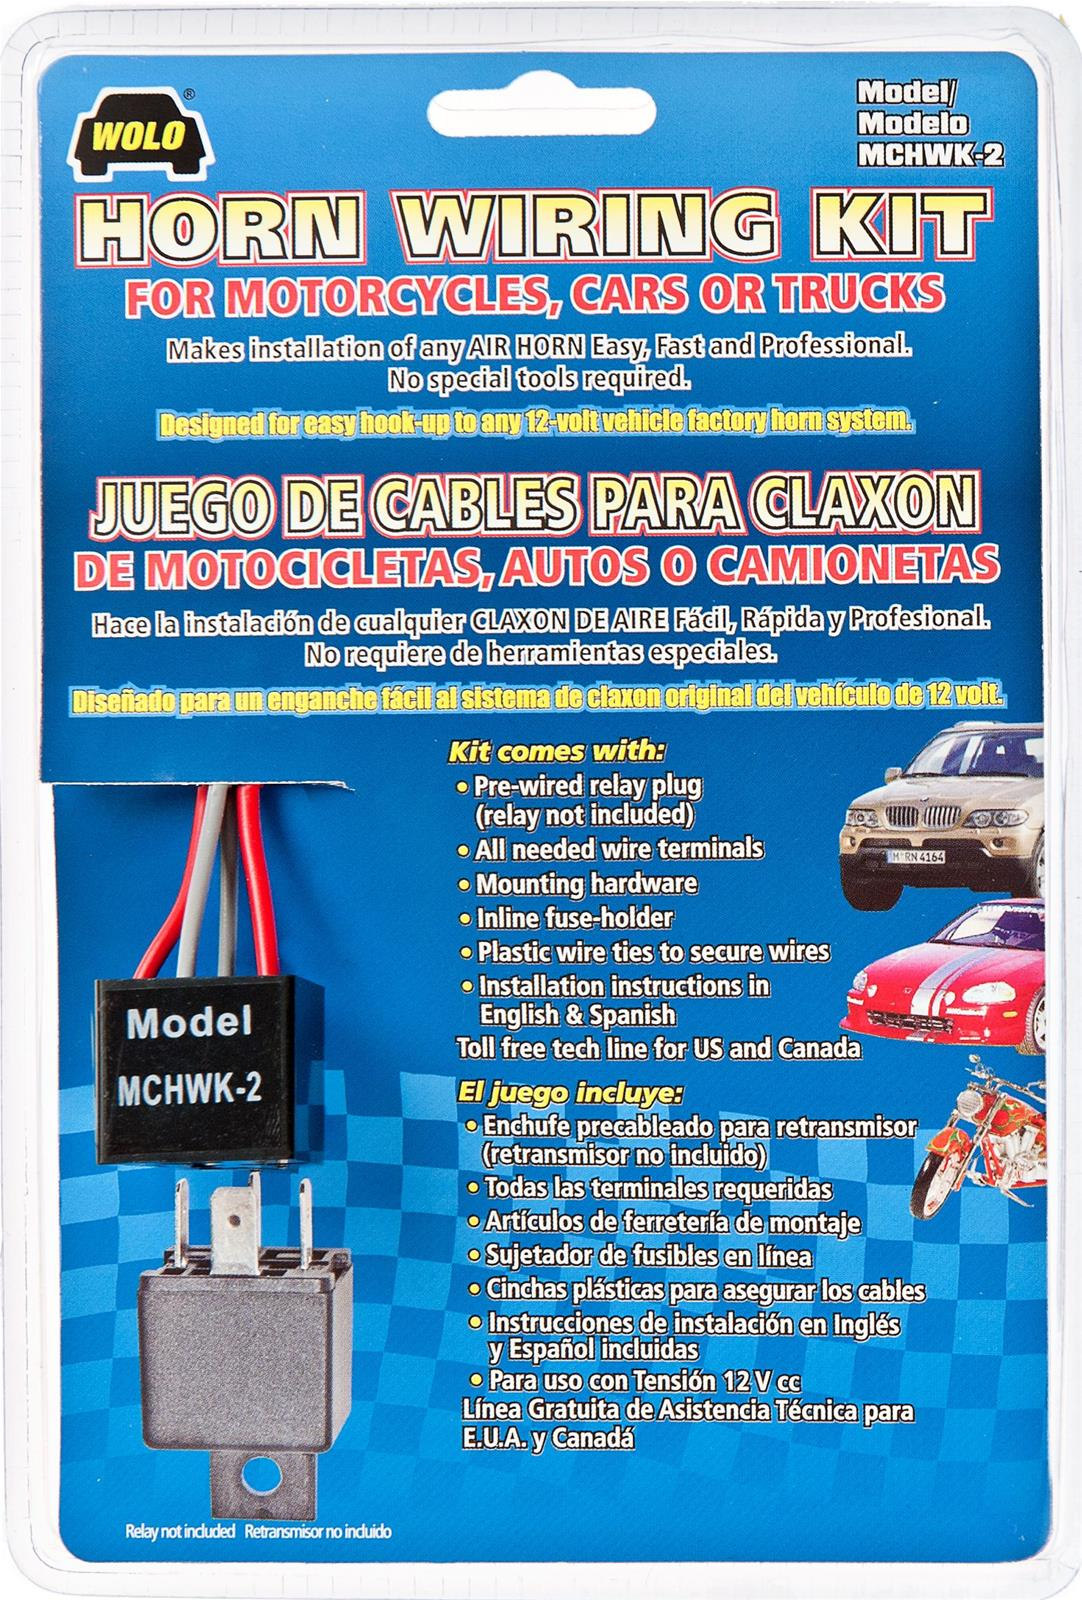 Wiring Harness For Motorcycle Horns on aftermarket headlights for motorcycles, rear turn signals for motorcycles, ignition switches for motorcycles, spark plugs for motorcycles, oil lines for motorcycles, throttle control for motorcycles, wire connectors for motorcycles, led tail lights for motorcycles, fuel injection kits for motorcycles, front forks for motorcycles, electric fan for motorcycles, brake lights for motorcycles, rolling chassis for motorcycles, led light kit for motorcycles, cigarette lighter for motorcycles, side marker lights for motorcycles, led strobe lights for motorcycles, headlight bulbs for motorcycles, license plate holder for motorcycles, battery box for motorcycles,